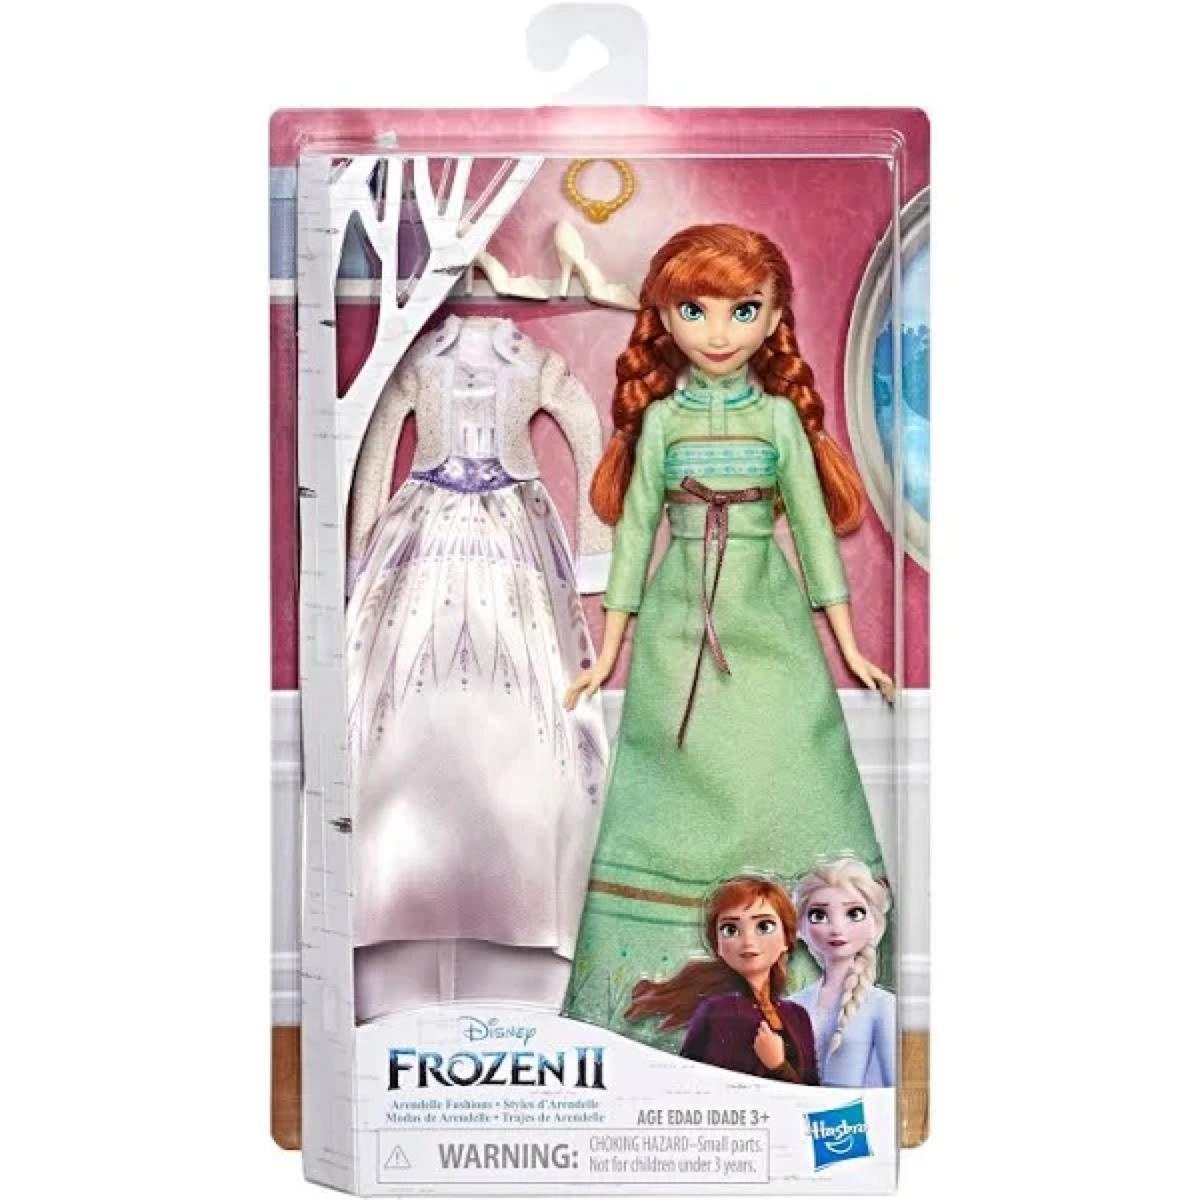 Frozen 2 Arendelle Anna Fashion Doll